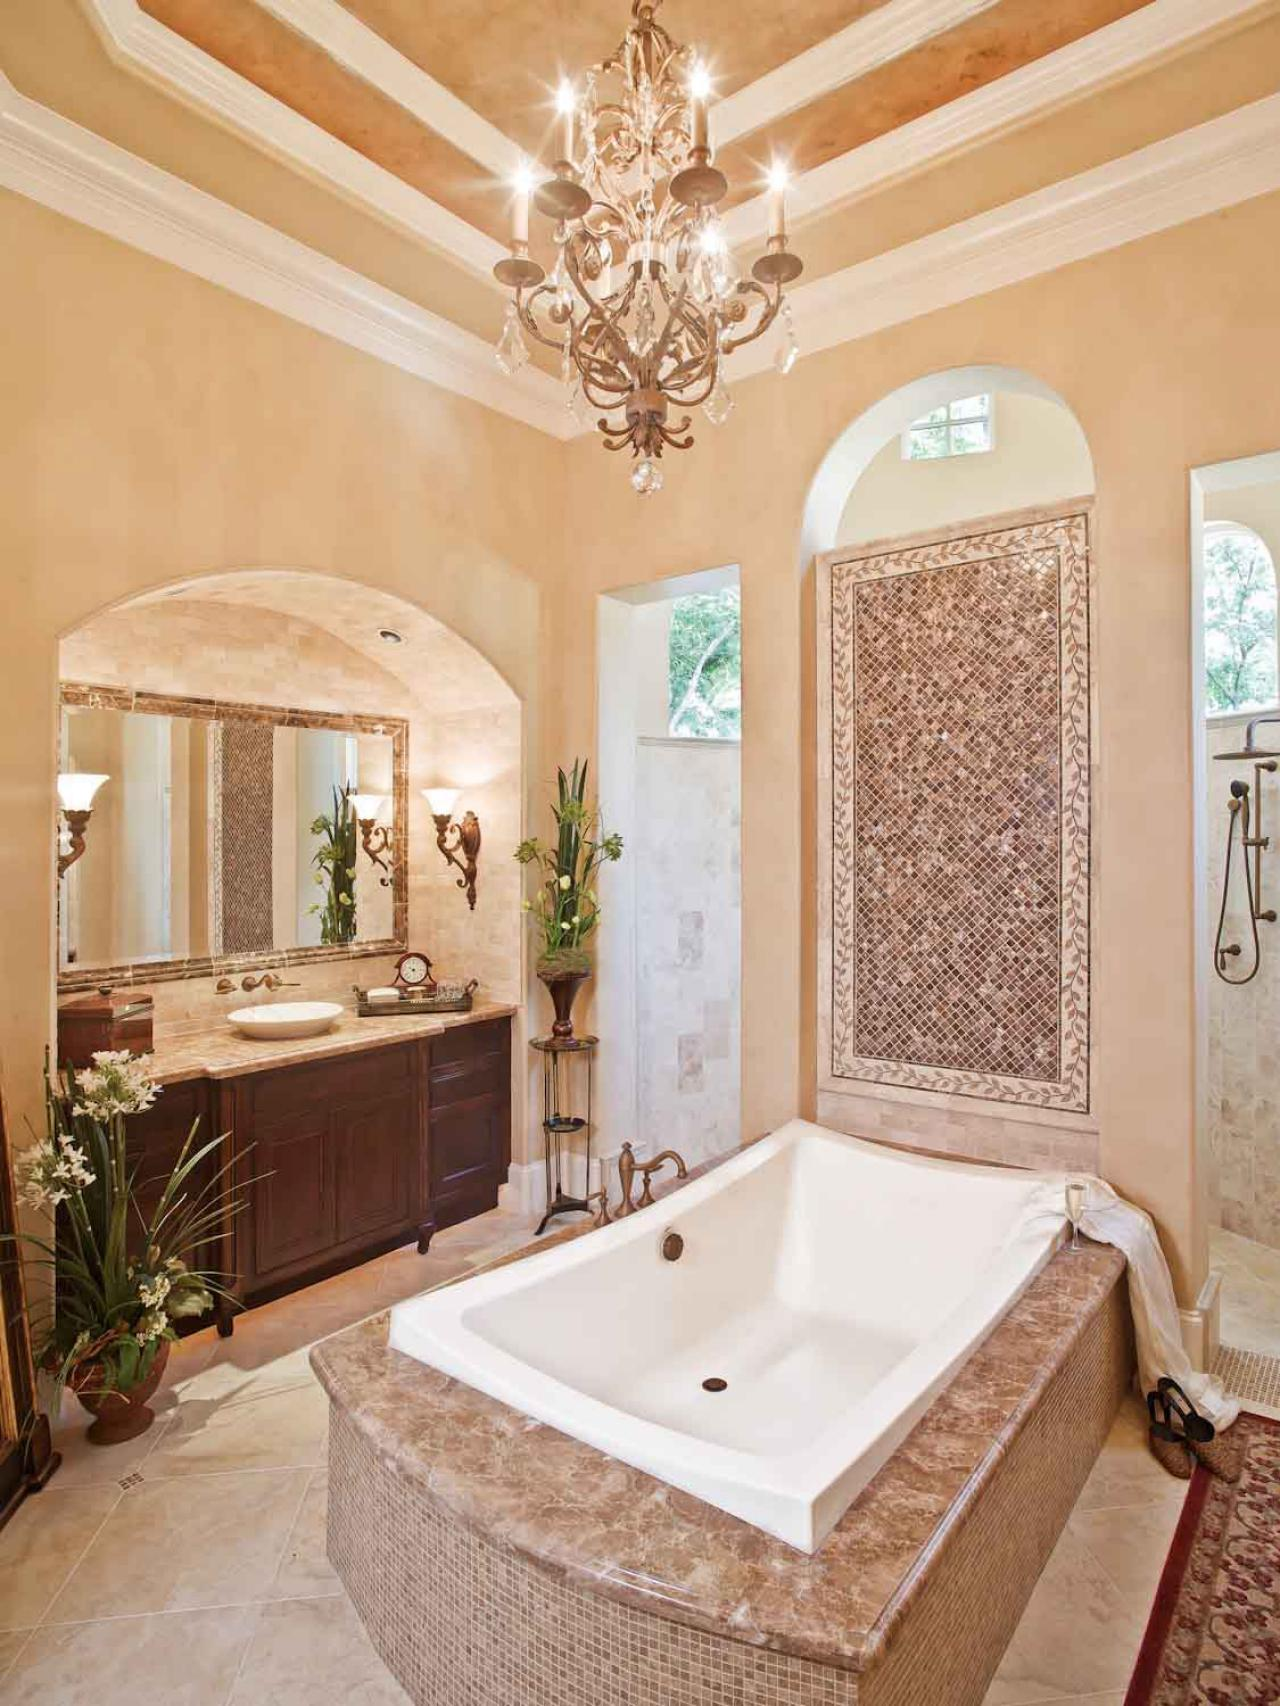 20 luxurious bathrooms with elegant chandelier lighting for Bathroom ideas for couples